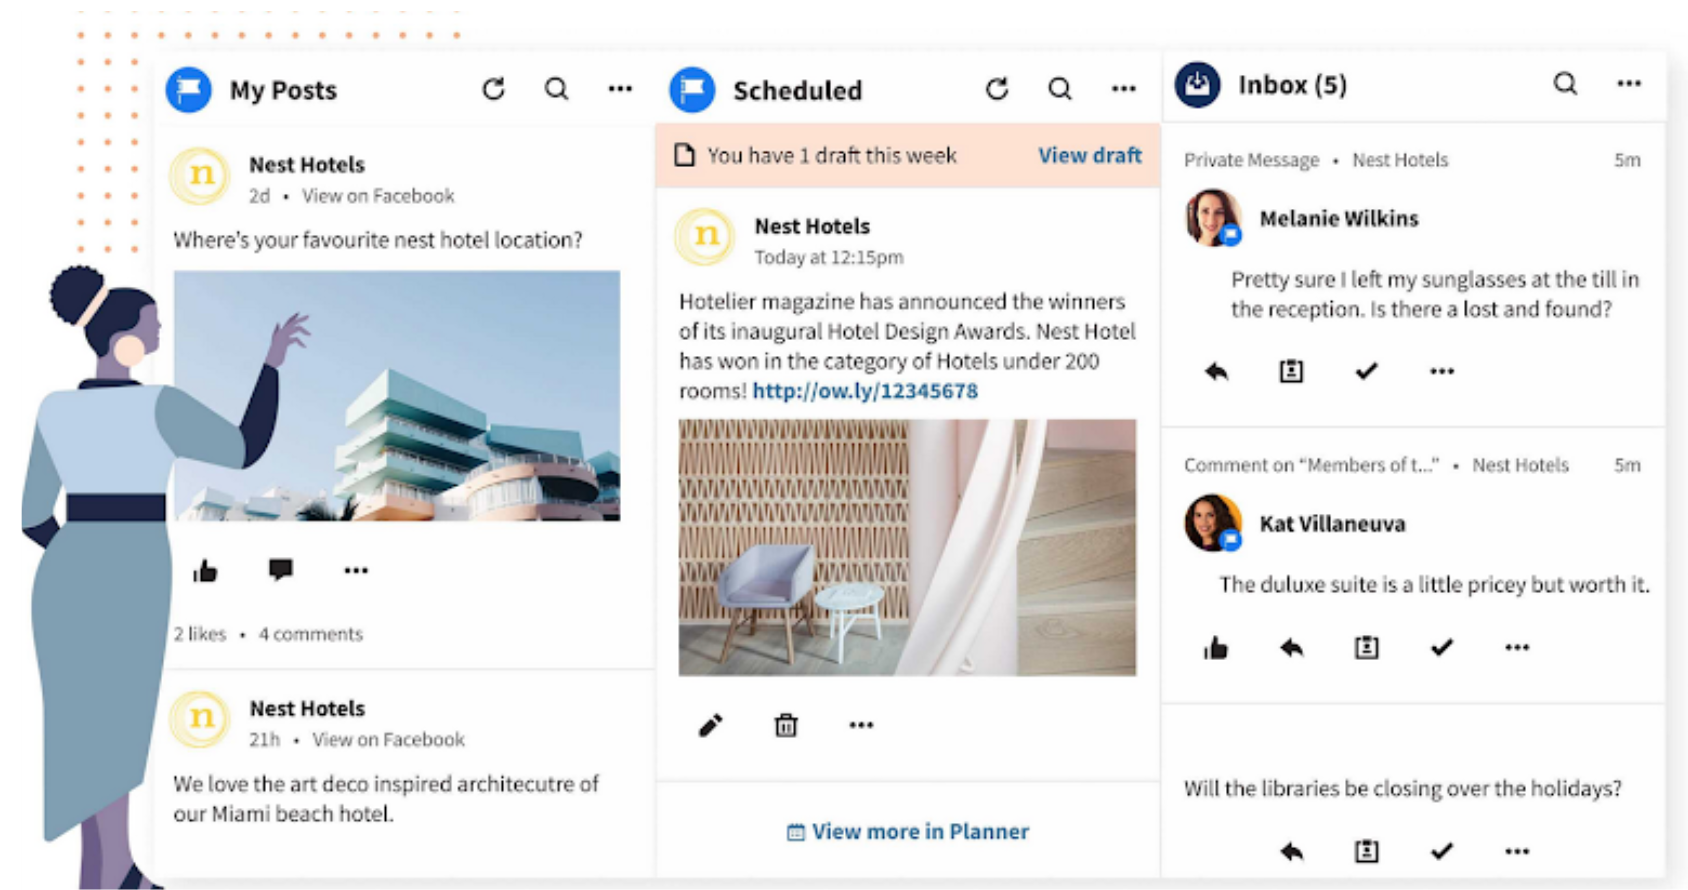 Hootsuite: Manage & Schedule Social Media Posts - 11 Best Inbound Marketing Tools to Boost Your Business in 2021